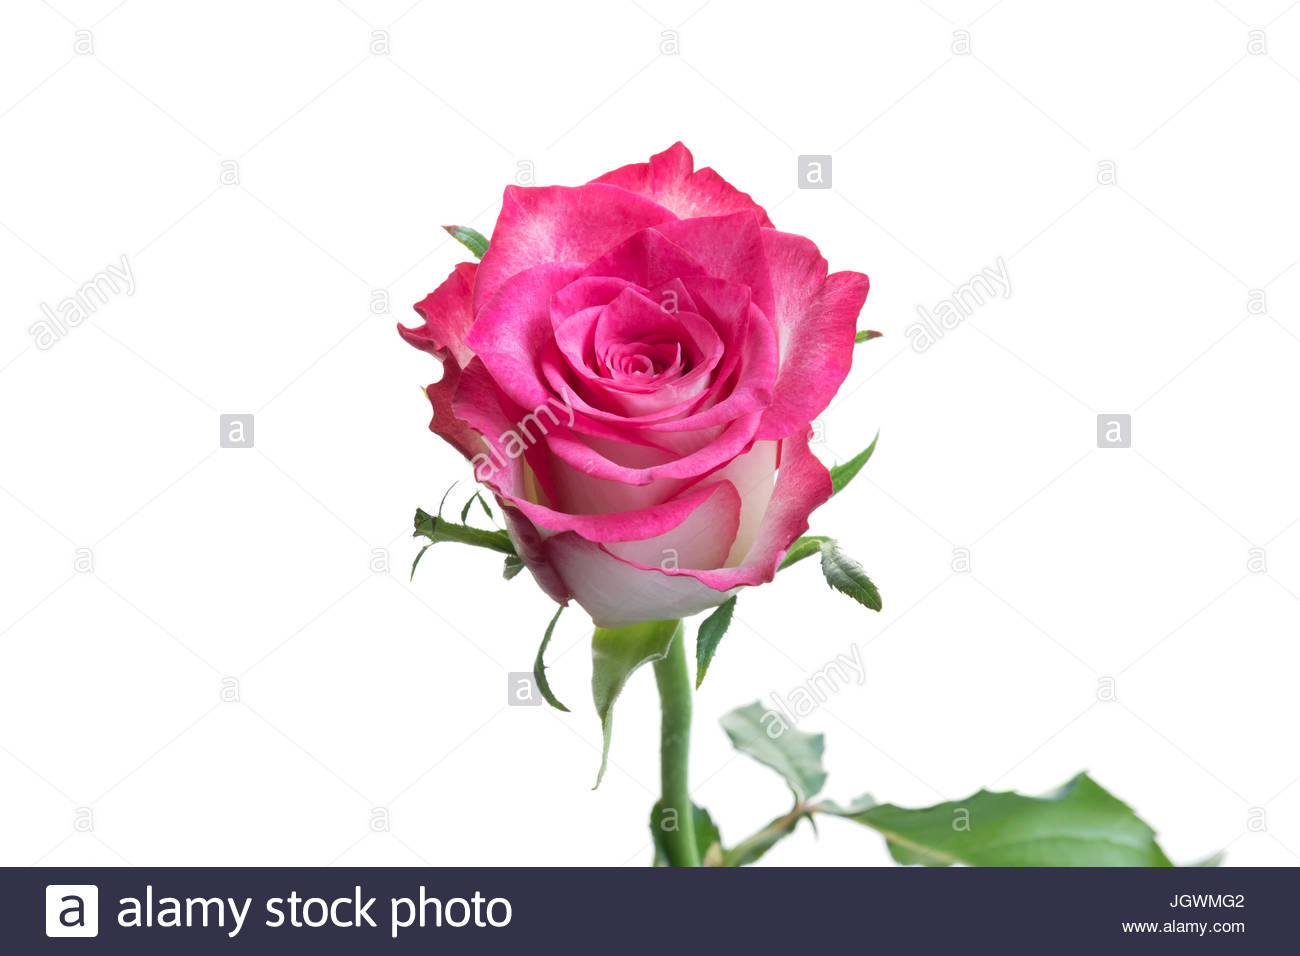 Pink and white rose close-up white background Stock Photo